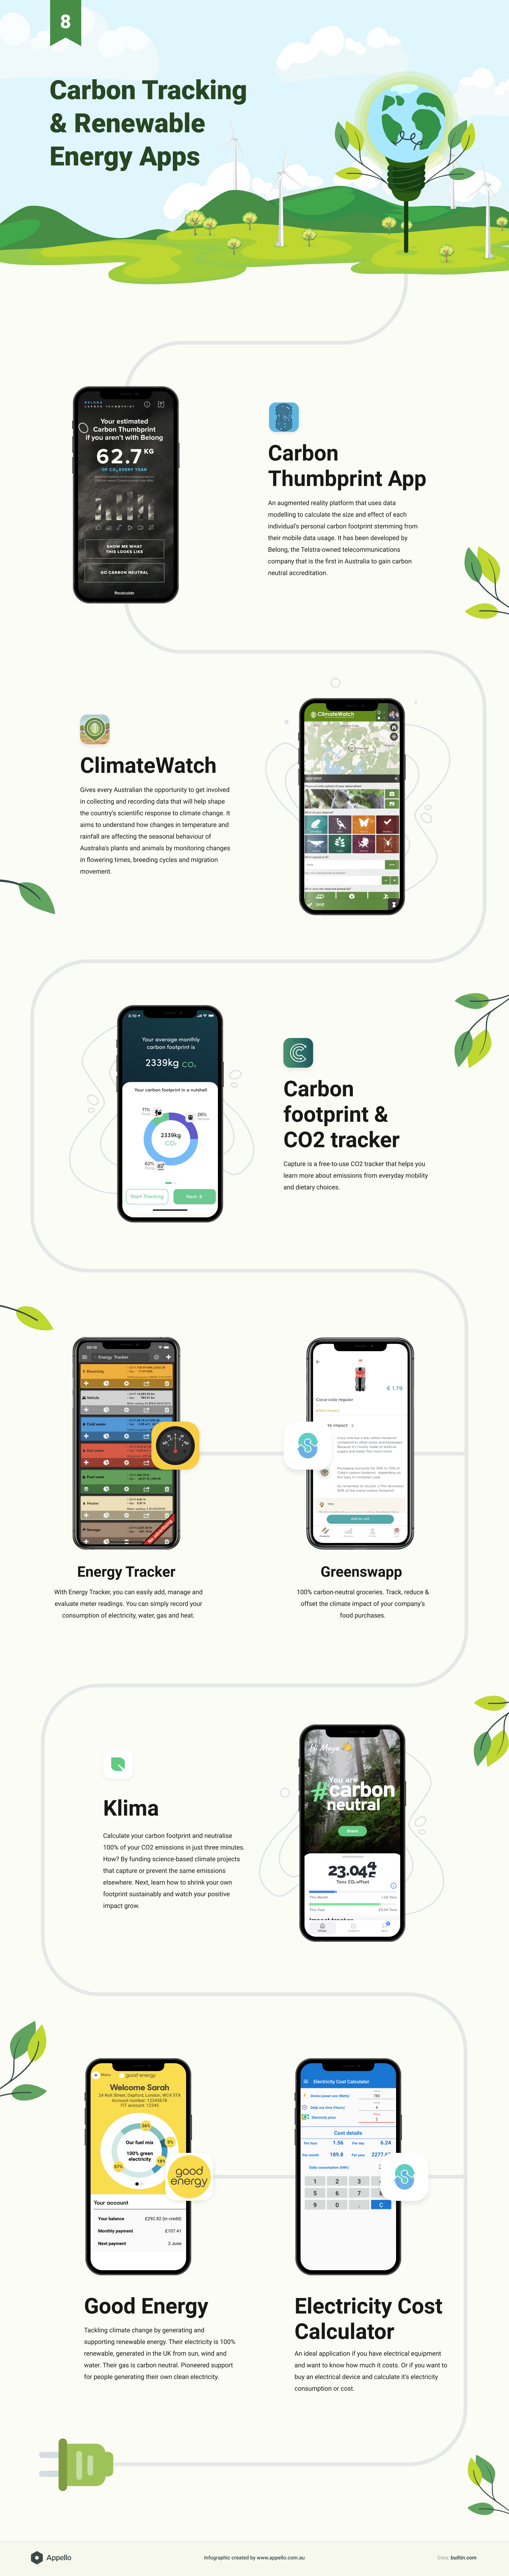 Carbon tracking and renewable energy apps infographic